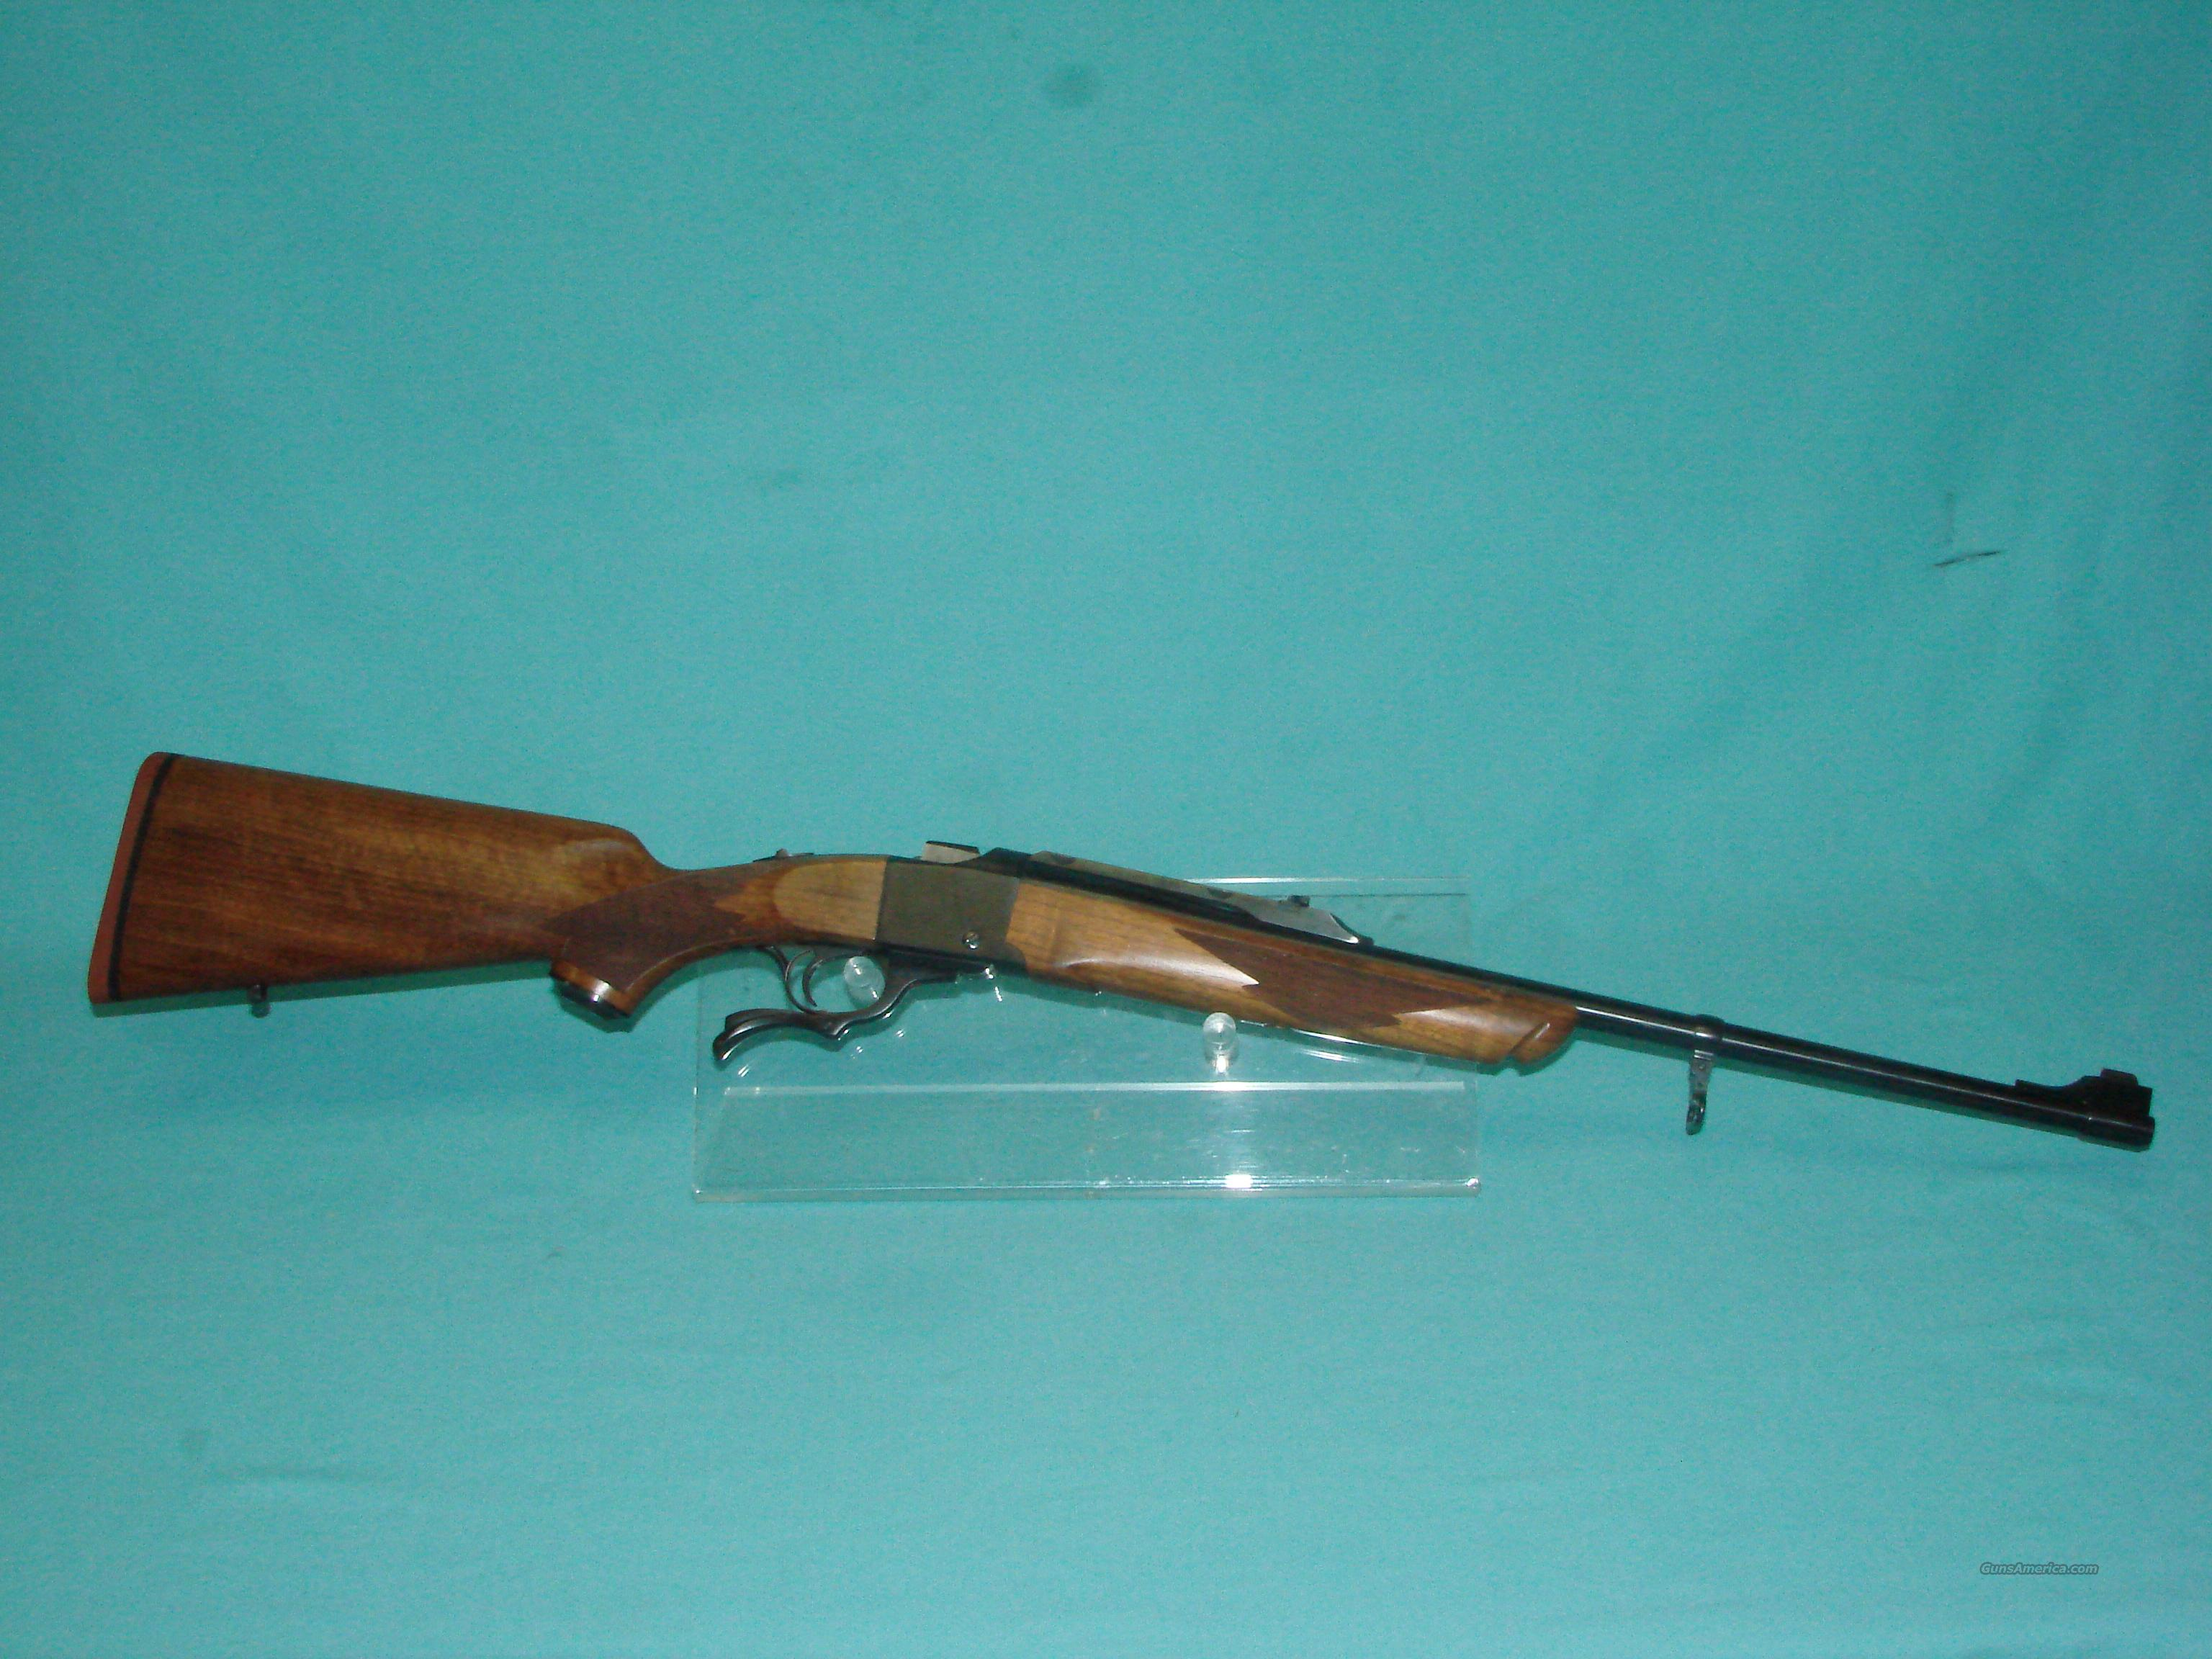 Ruger No1 357 Magnum -Not CHP-  Guns > Rifles > Ruger Rifles > #1 Type